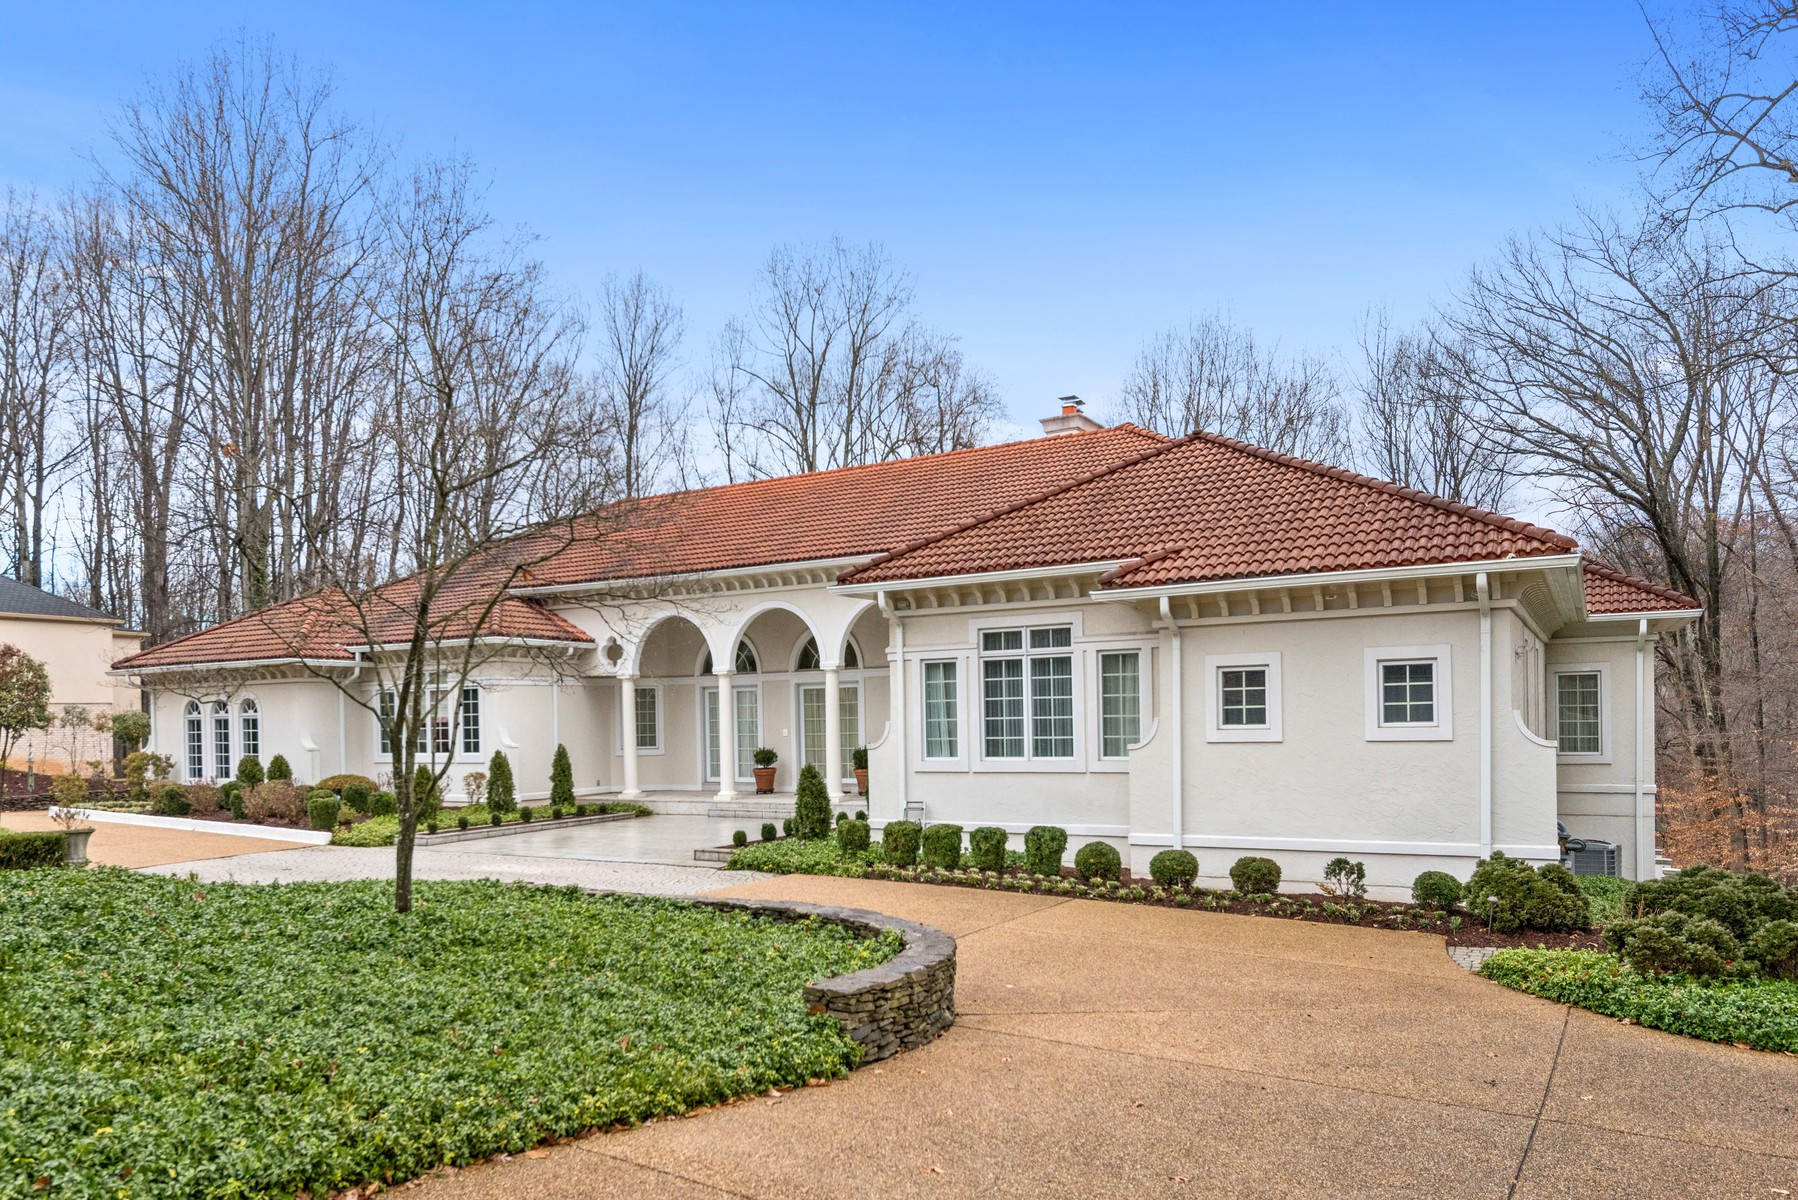 Single Family Home for Sale at 1336 Potomac School Road, Mclean 1336 Potomac School Rd McLean, Virginia, 22101 United States